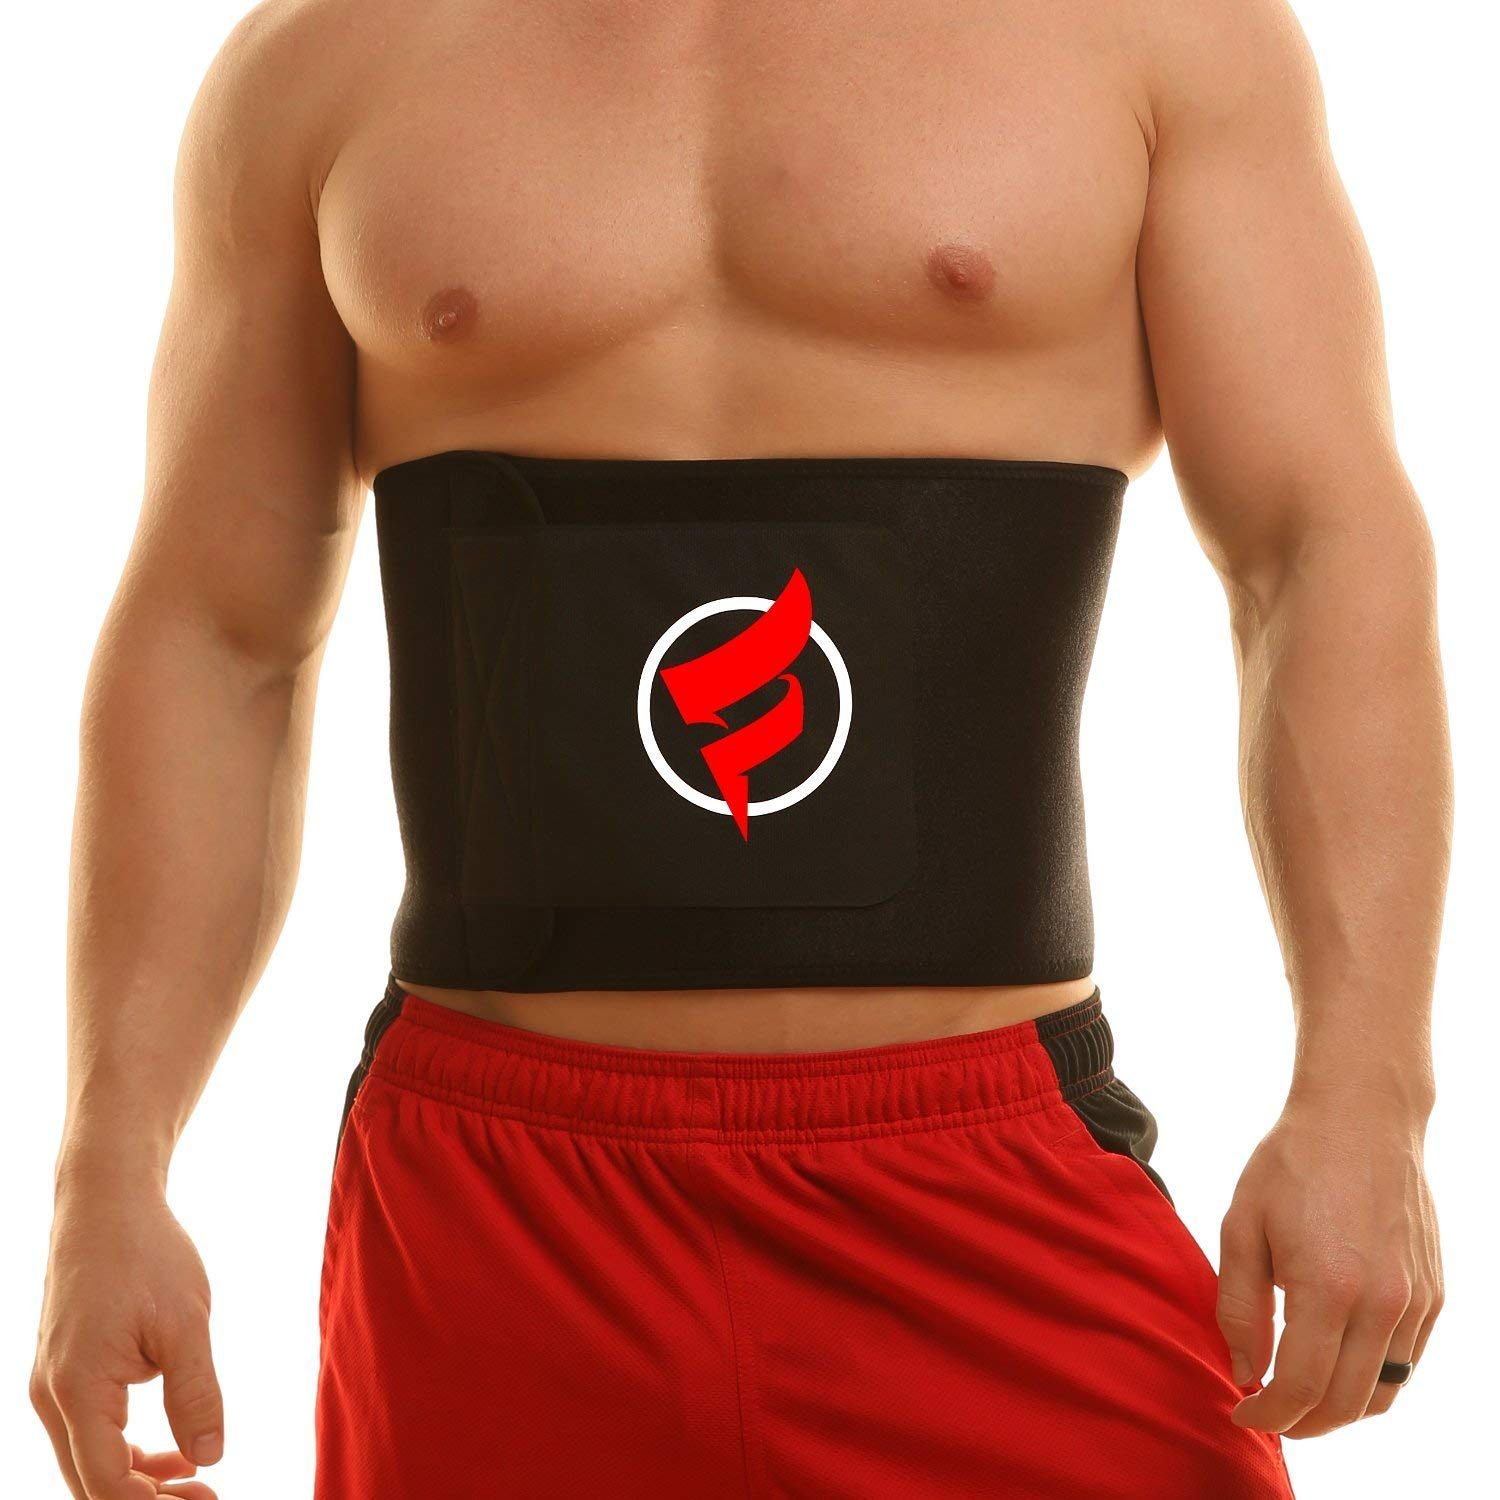 Fitru Waist Trimmer Weight Loss Ab Belt Review